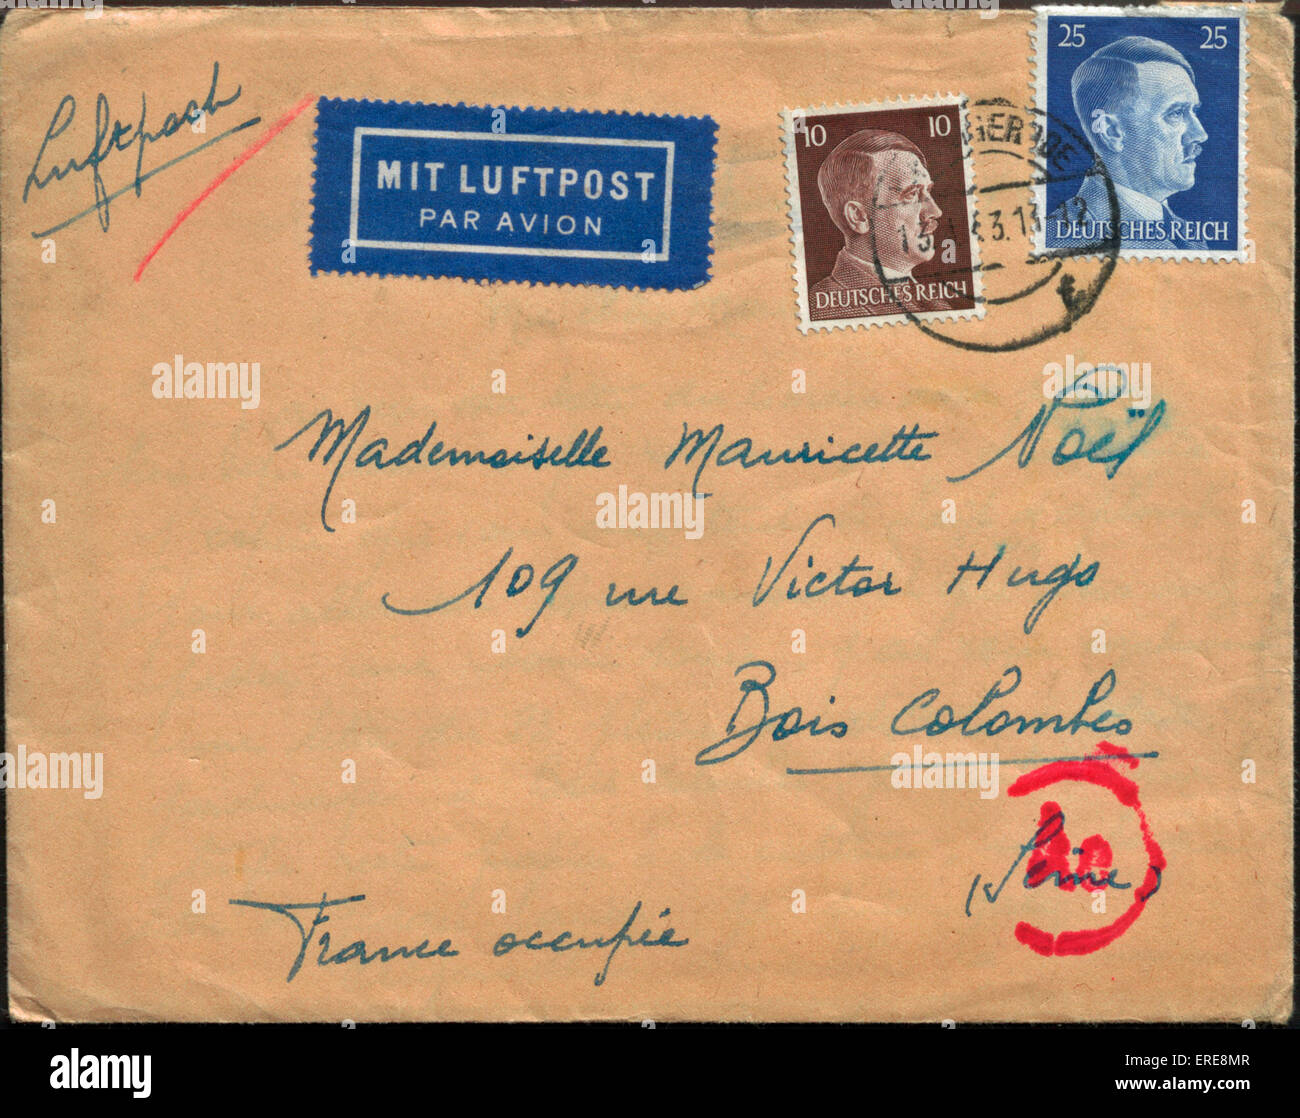 Envelope with German stamps bearing Hitler's portrait, sent from Germany to occupied France in 1943. - Stock Image